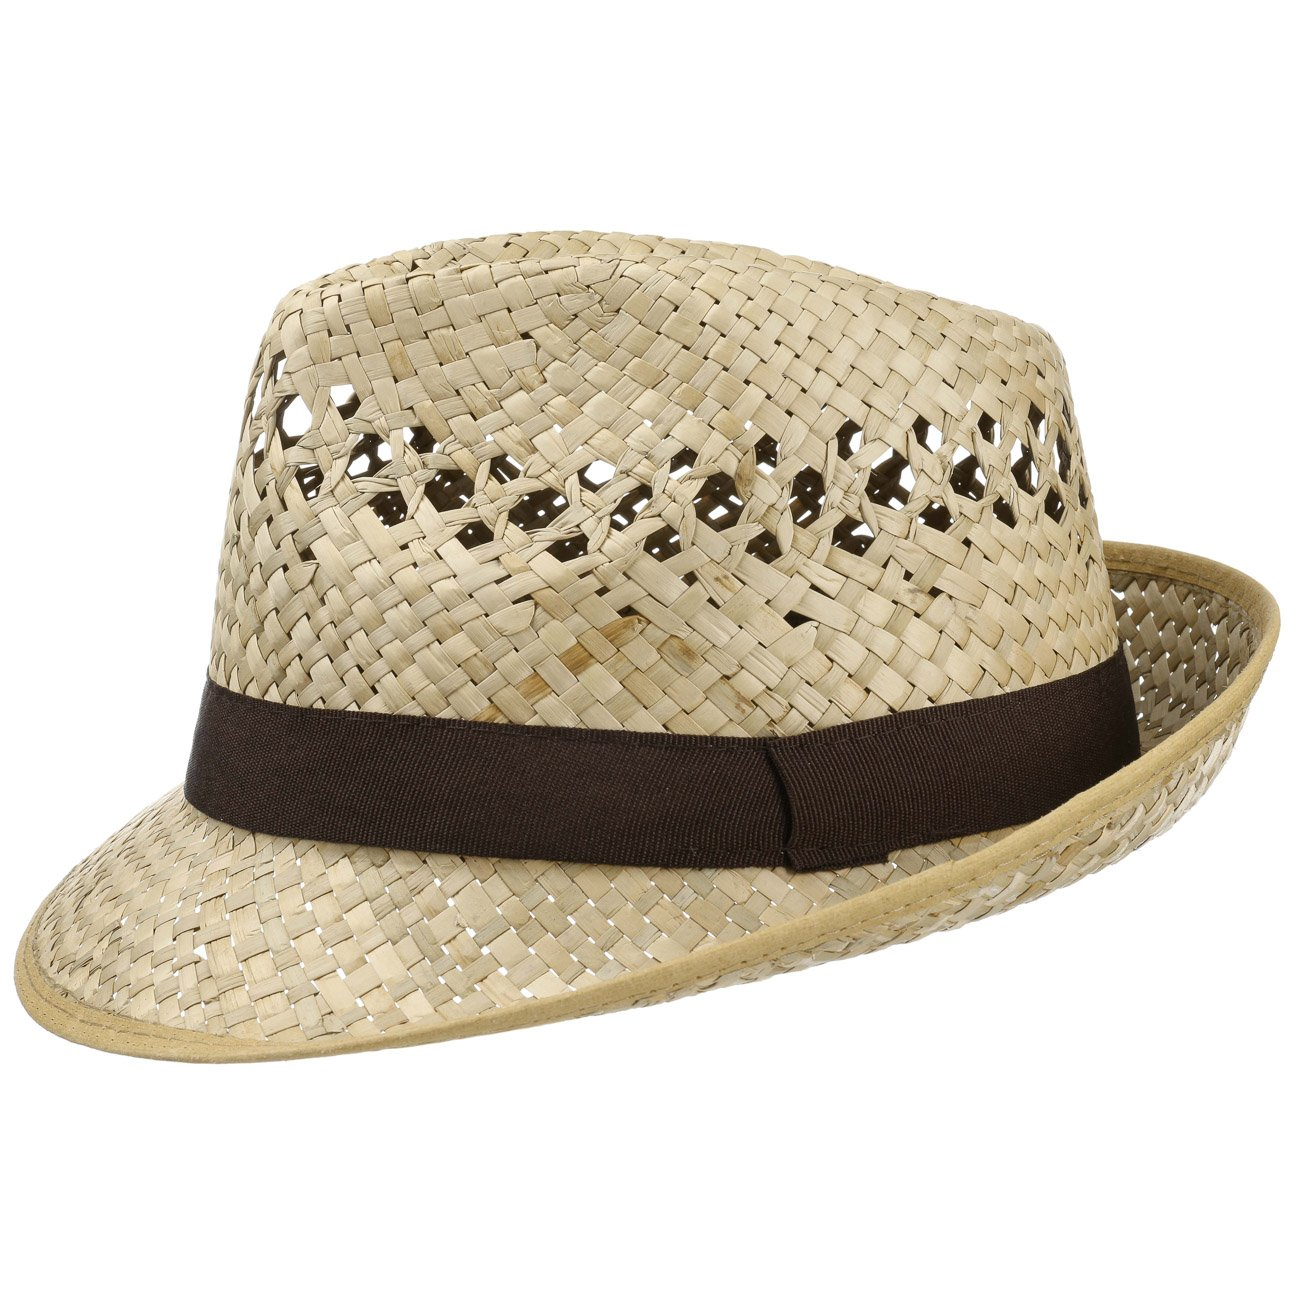 Classic Straw Hat (Trilby) Men and Women | Hat in a Natural Colour | Sizes S, M, L and XL | Summer Hat with a Black Grosgrain Ribbon | Sun Hat Made in Italy | Beach Hat for The Summer Lipodo